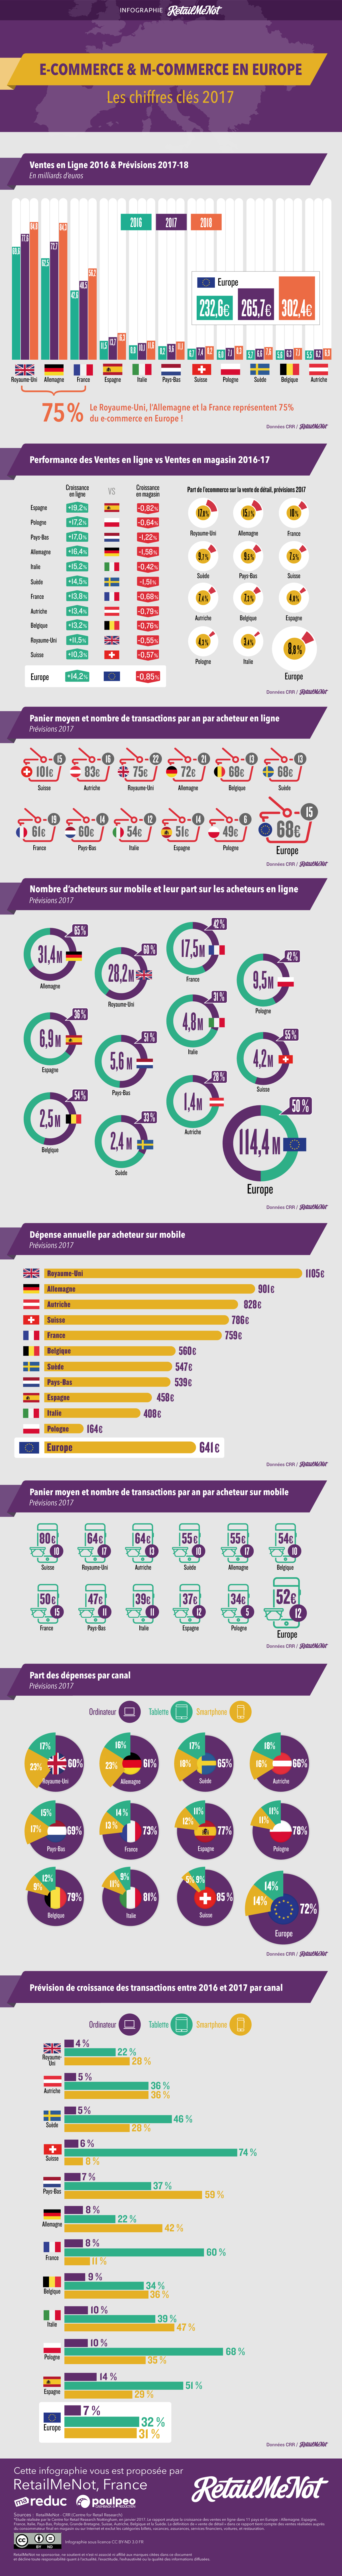 infographie-chiffres-ecommerce-2017.png